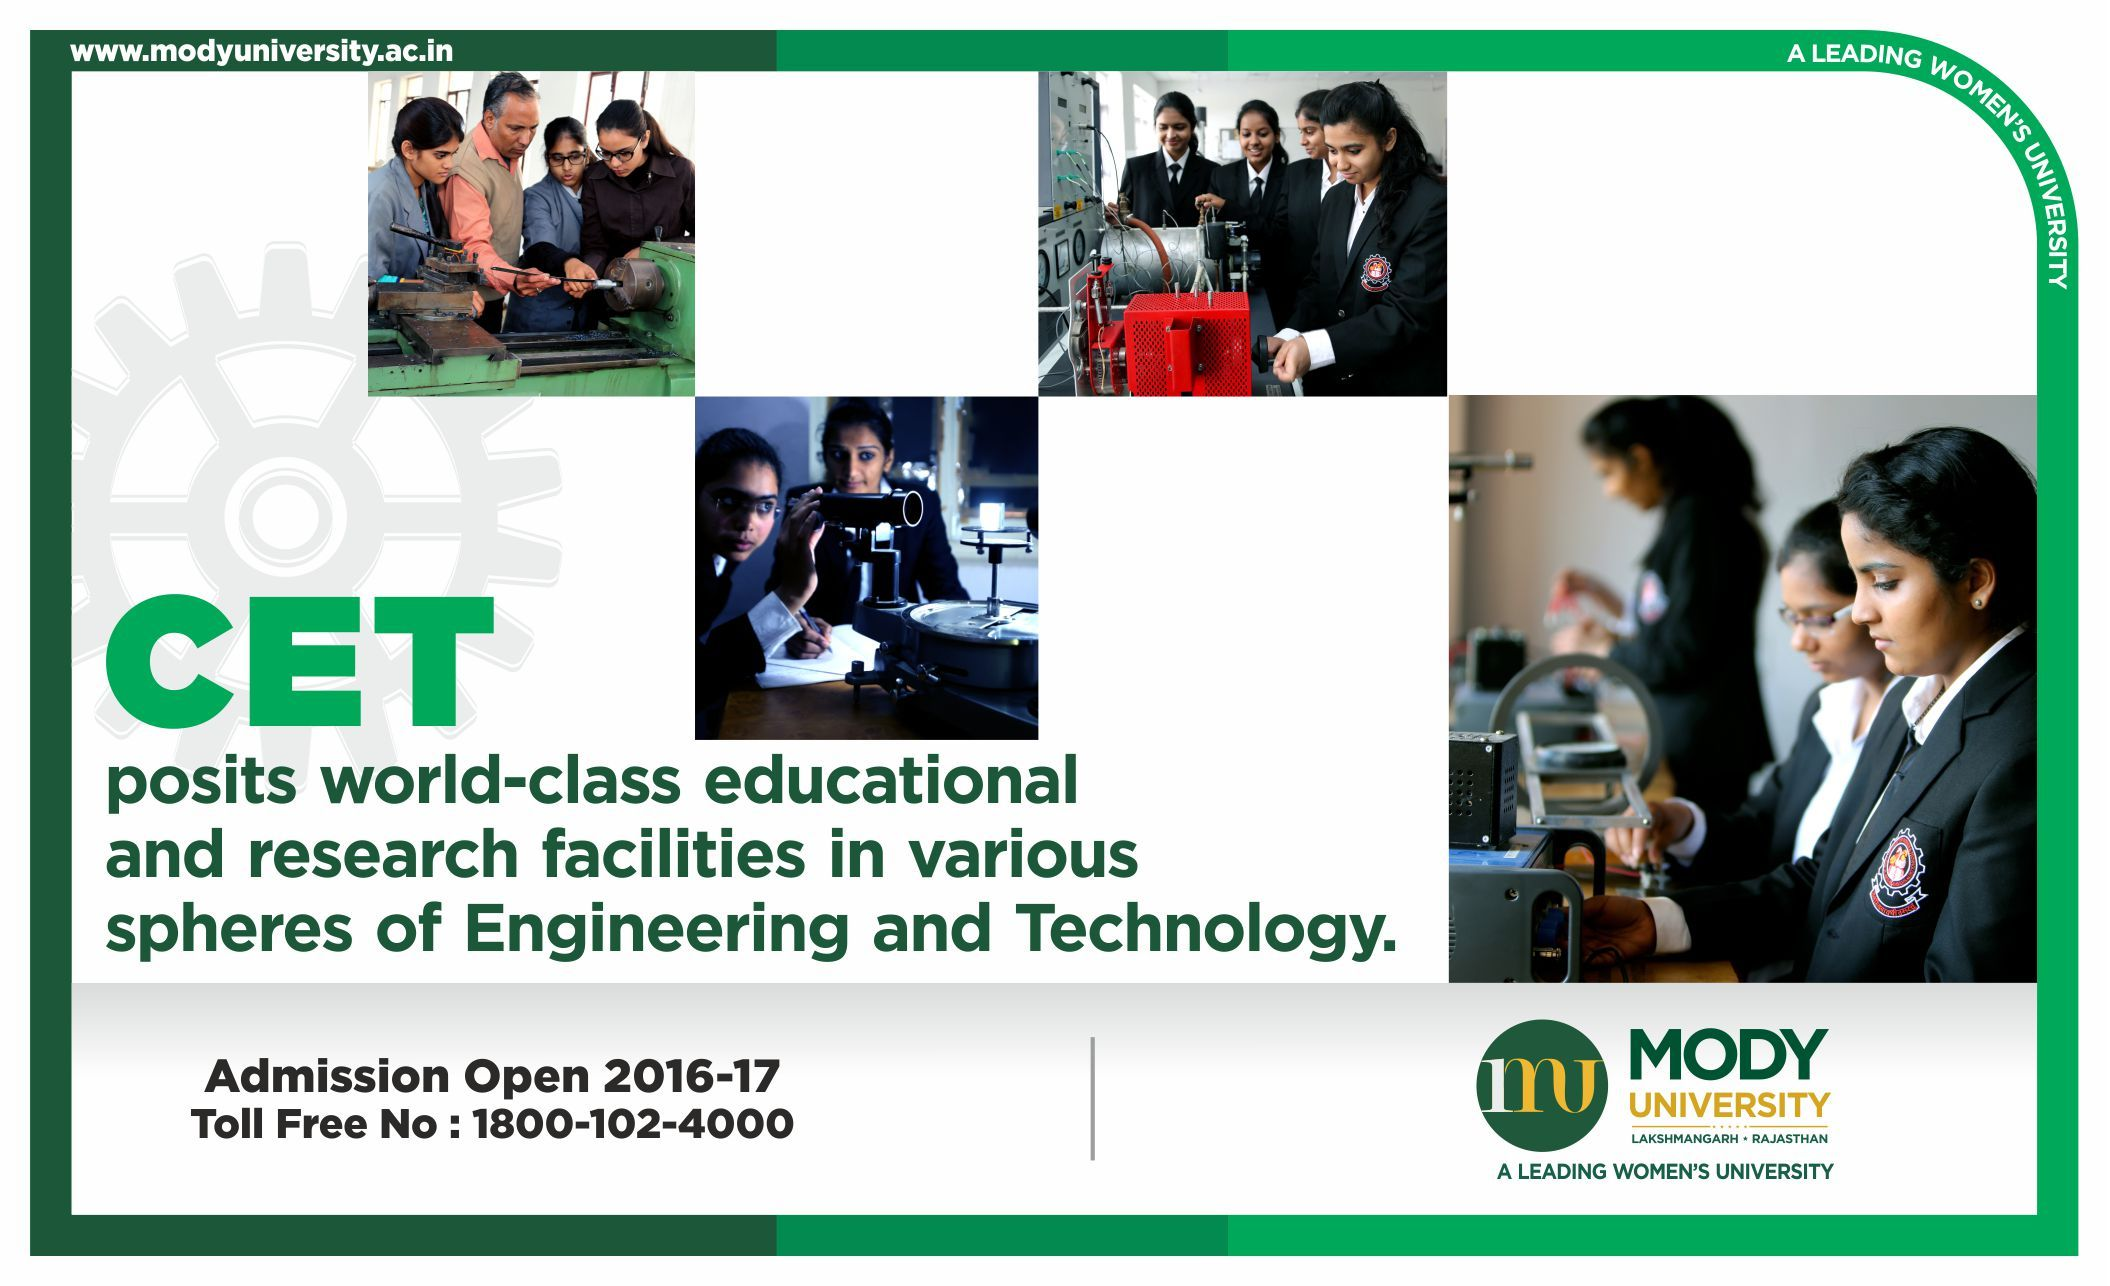 CET posits world-class educational and research facilities in various spheres of Engineering and Technology.